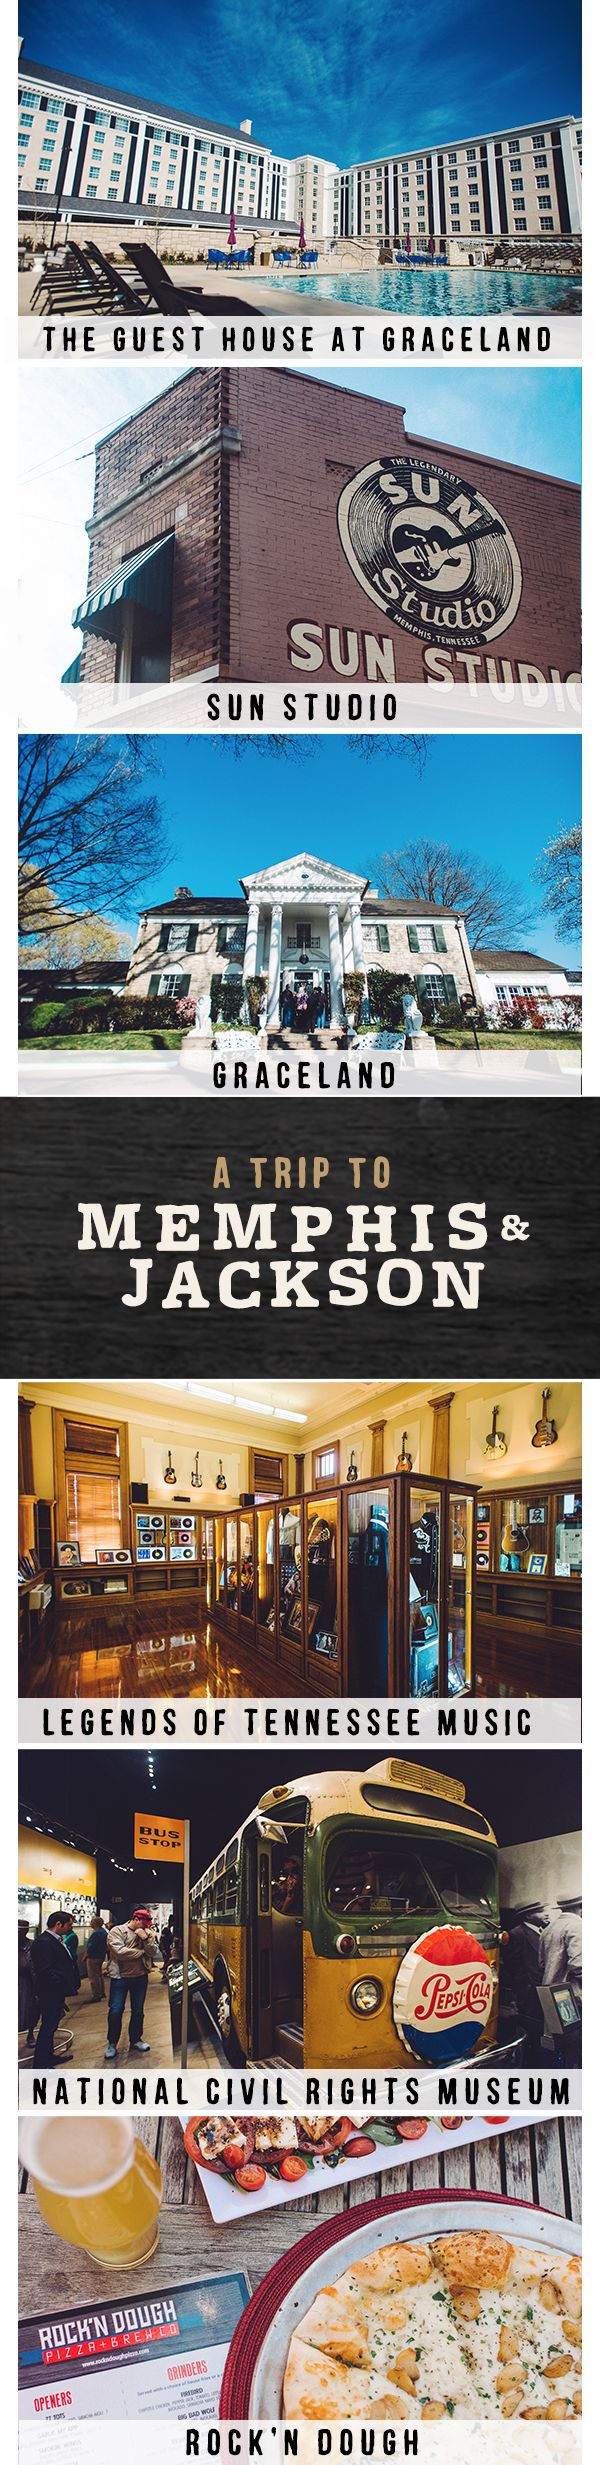 We invited photographer Zoe Rain into town to experience the best of Memphis and Jackson. Check out her trip recap as you plan your own adventure Made in Tennessee.